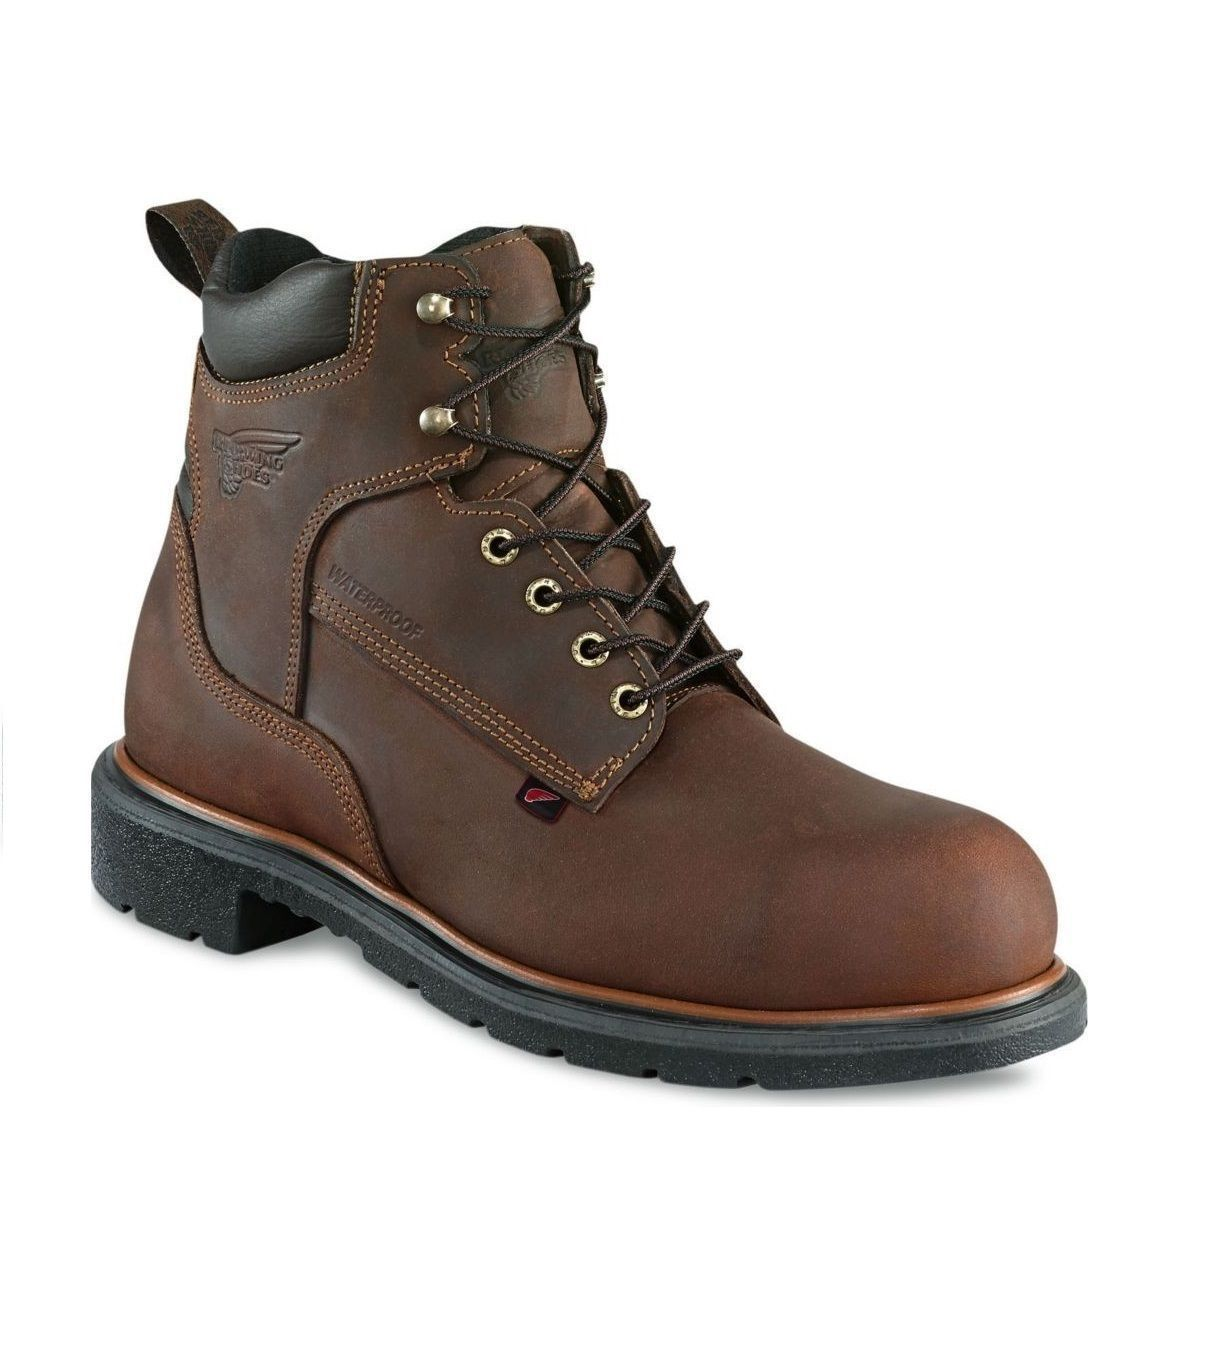 Red Wing 415 Mens Brown MADE IN THE USA Waterproof Leather Boots